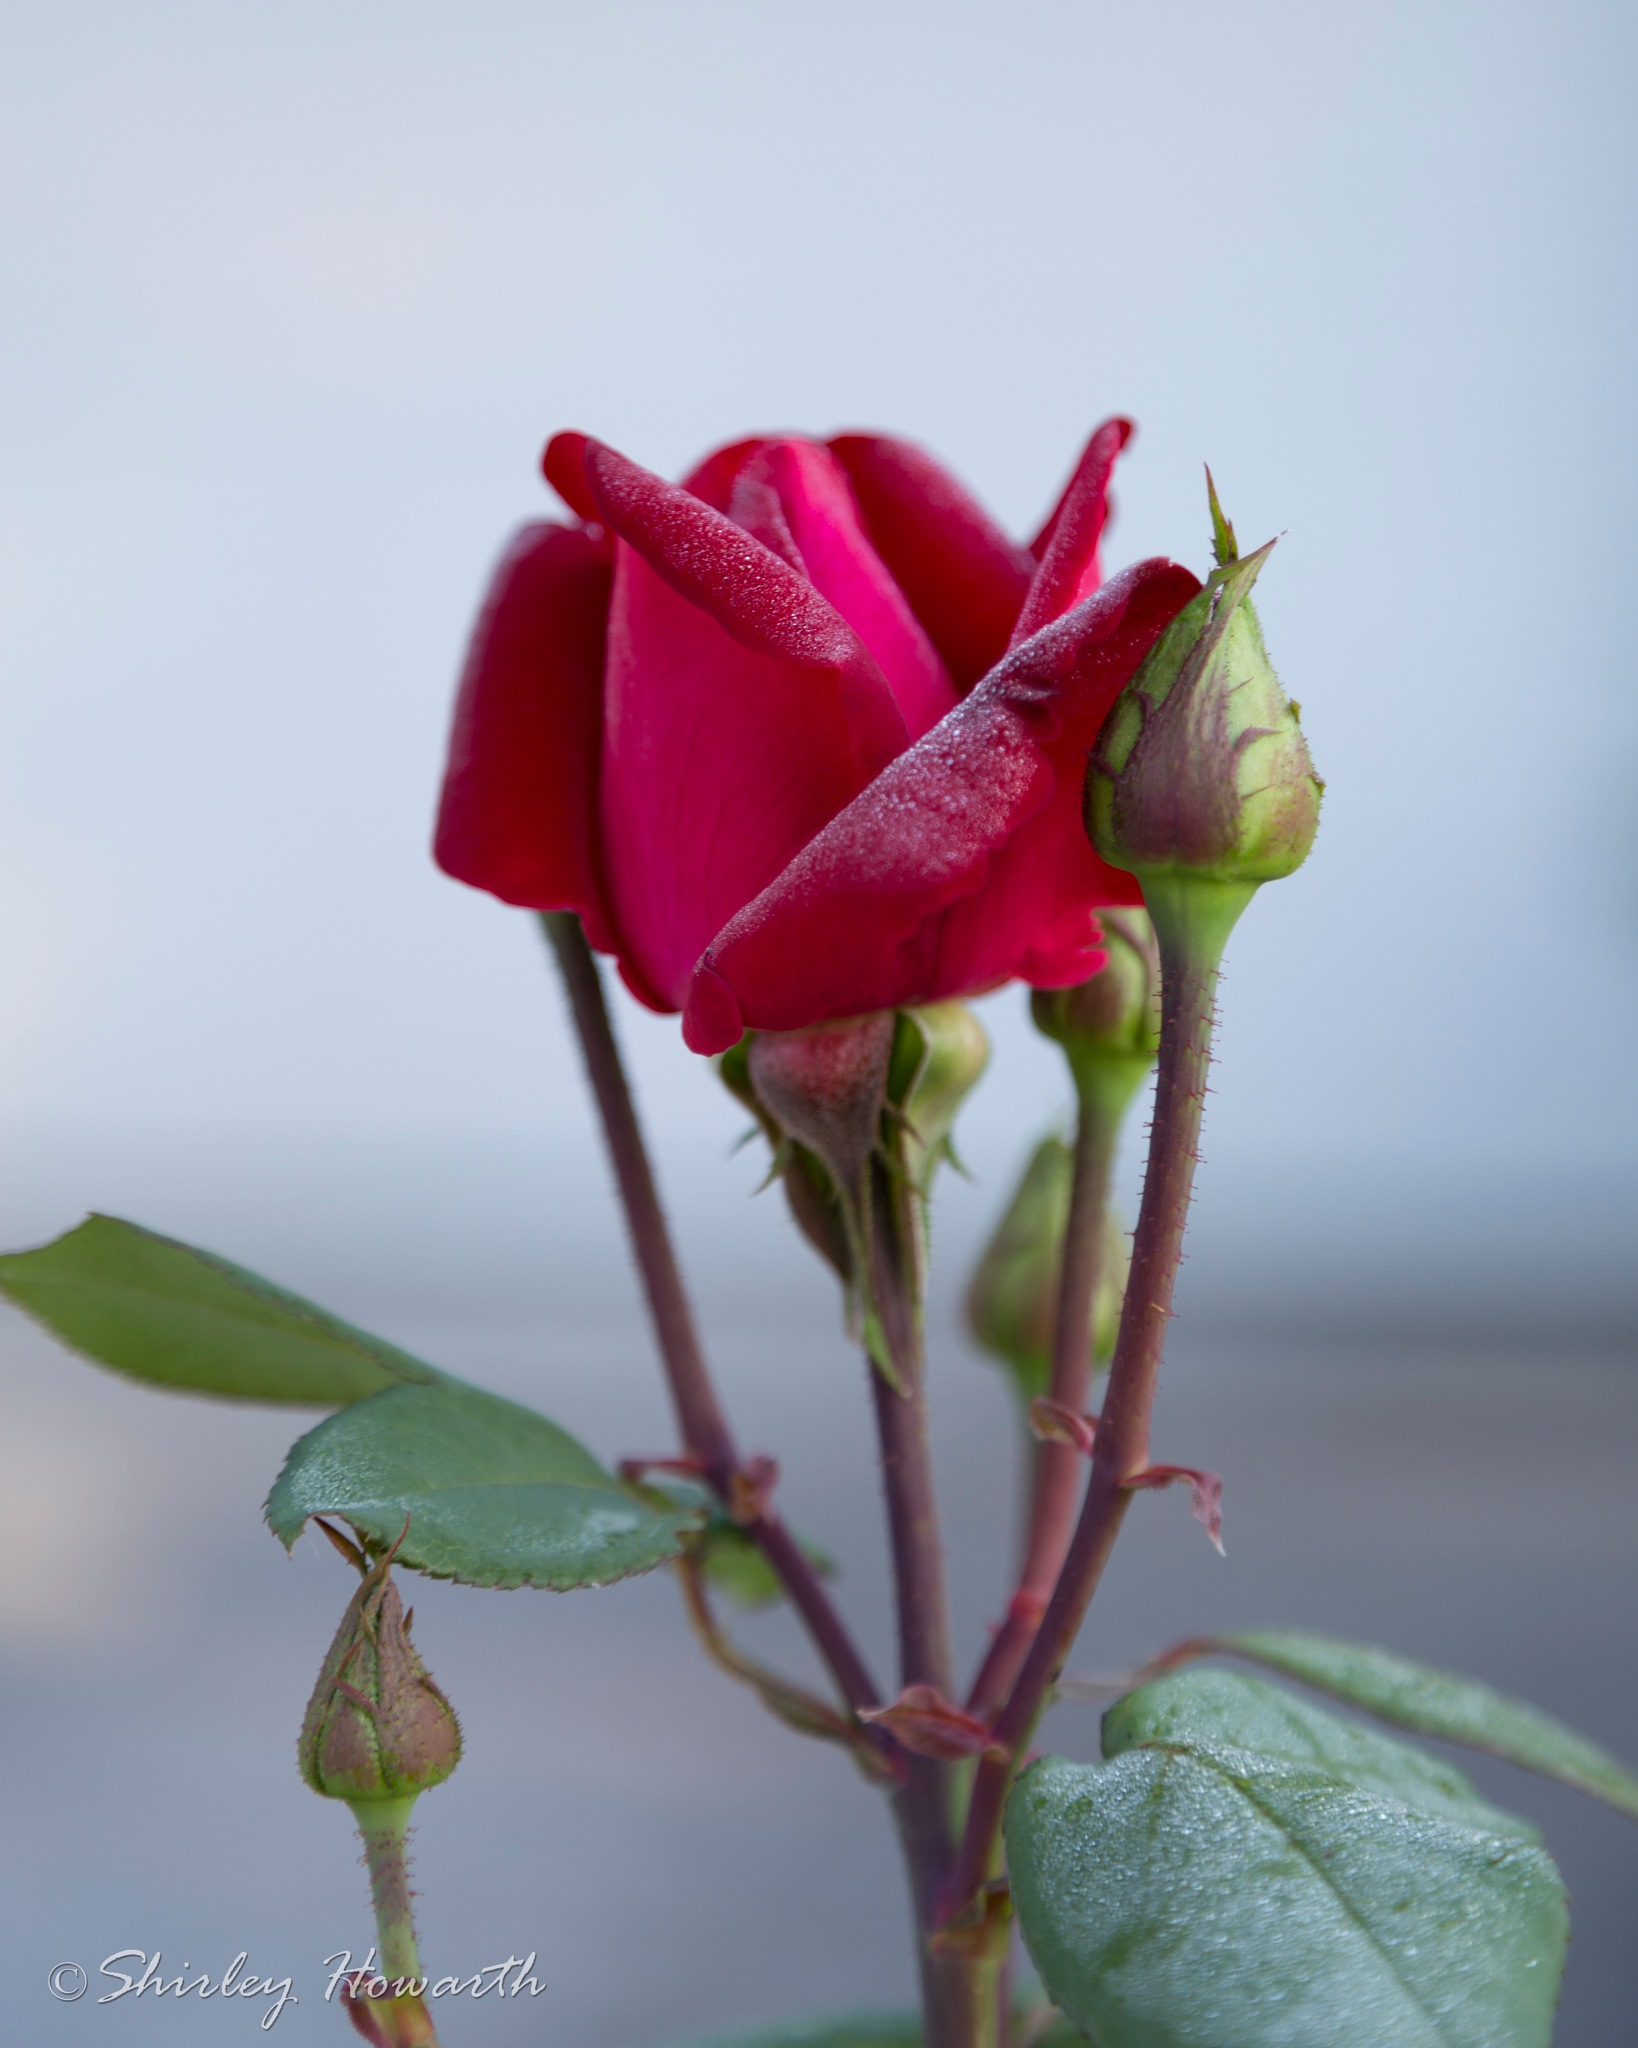 Not quite the Last Rose of Summer by Shirley Howarth